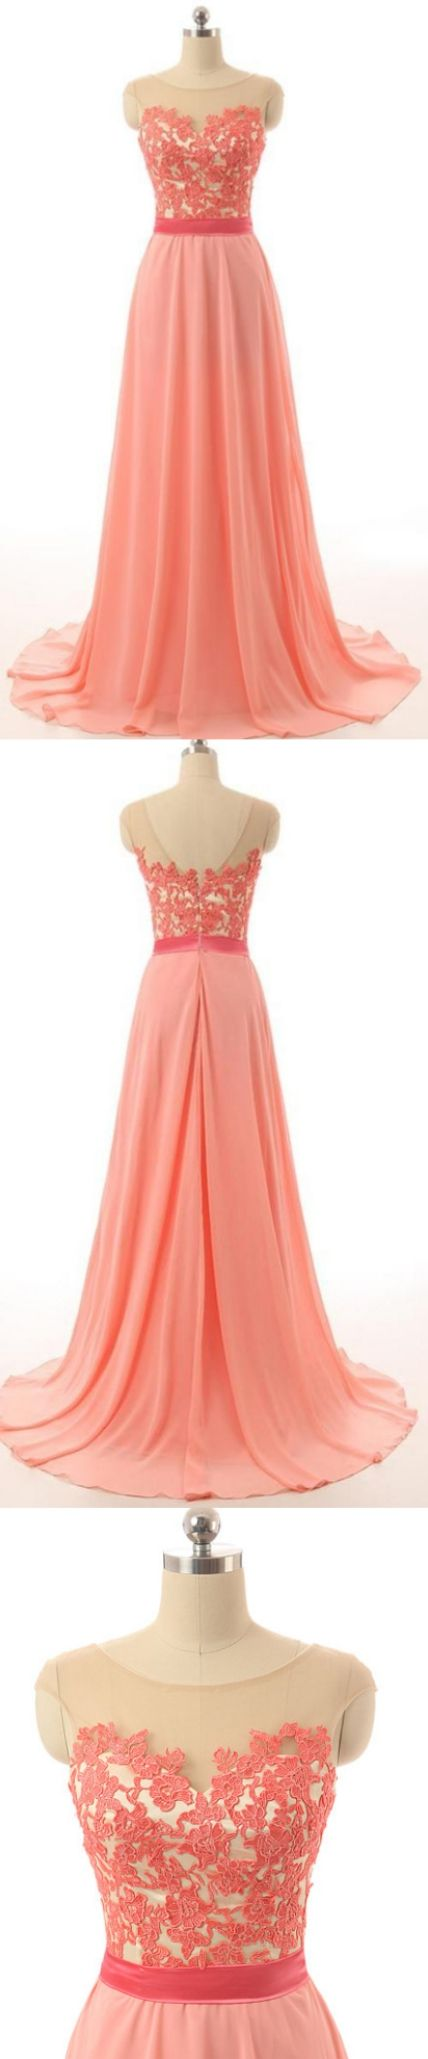 Watermelon A-line/Princess Prom Dresses, Watermelon Prom Dresses, A-line/Princess Prom Dresses, Long Prom Dresses, Dresses For Girls, Lace Prom Dresses, Open Back Dresses, Long Lace dresses, Dresses For Prom, Open Back Prom Dresses, Girls Lace dresses, Prom Dresses Long, Long Dresses For Prom, Long Dresses For Girls, Long Lace Prom Dresses, Lace Long dresses, Girls Prom Dresses, Prom Dresses Lace, Girls Long Dresses, Prom Long Dresses, Lace Back dresses, Prom Dresses Open Back